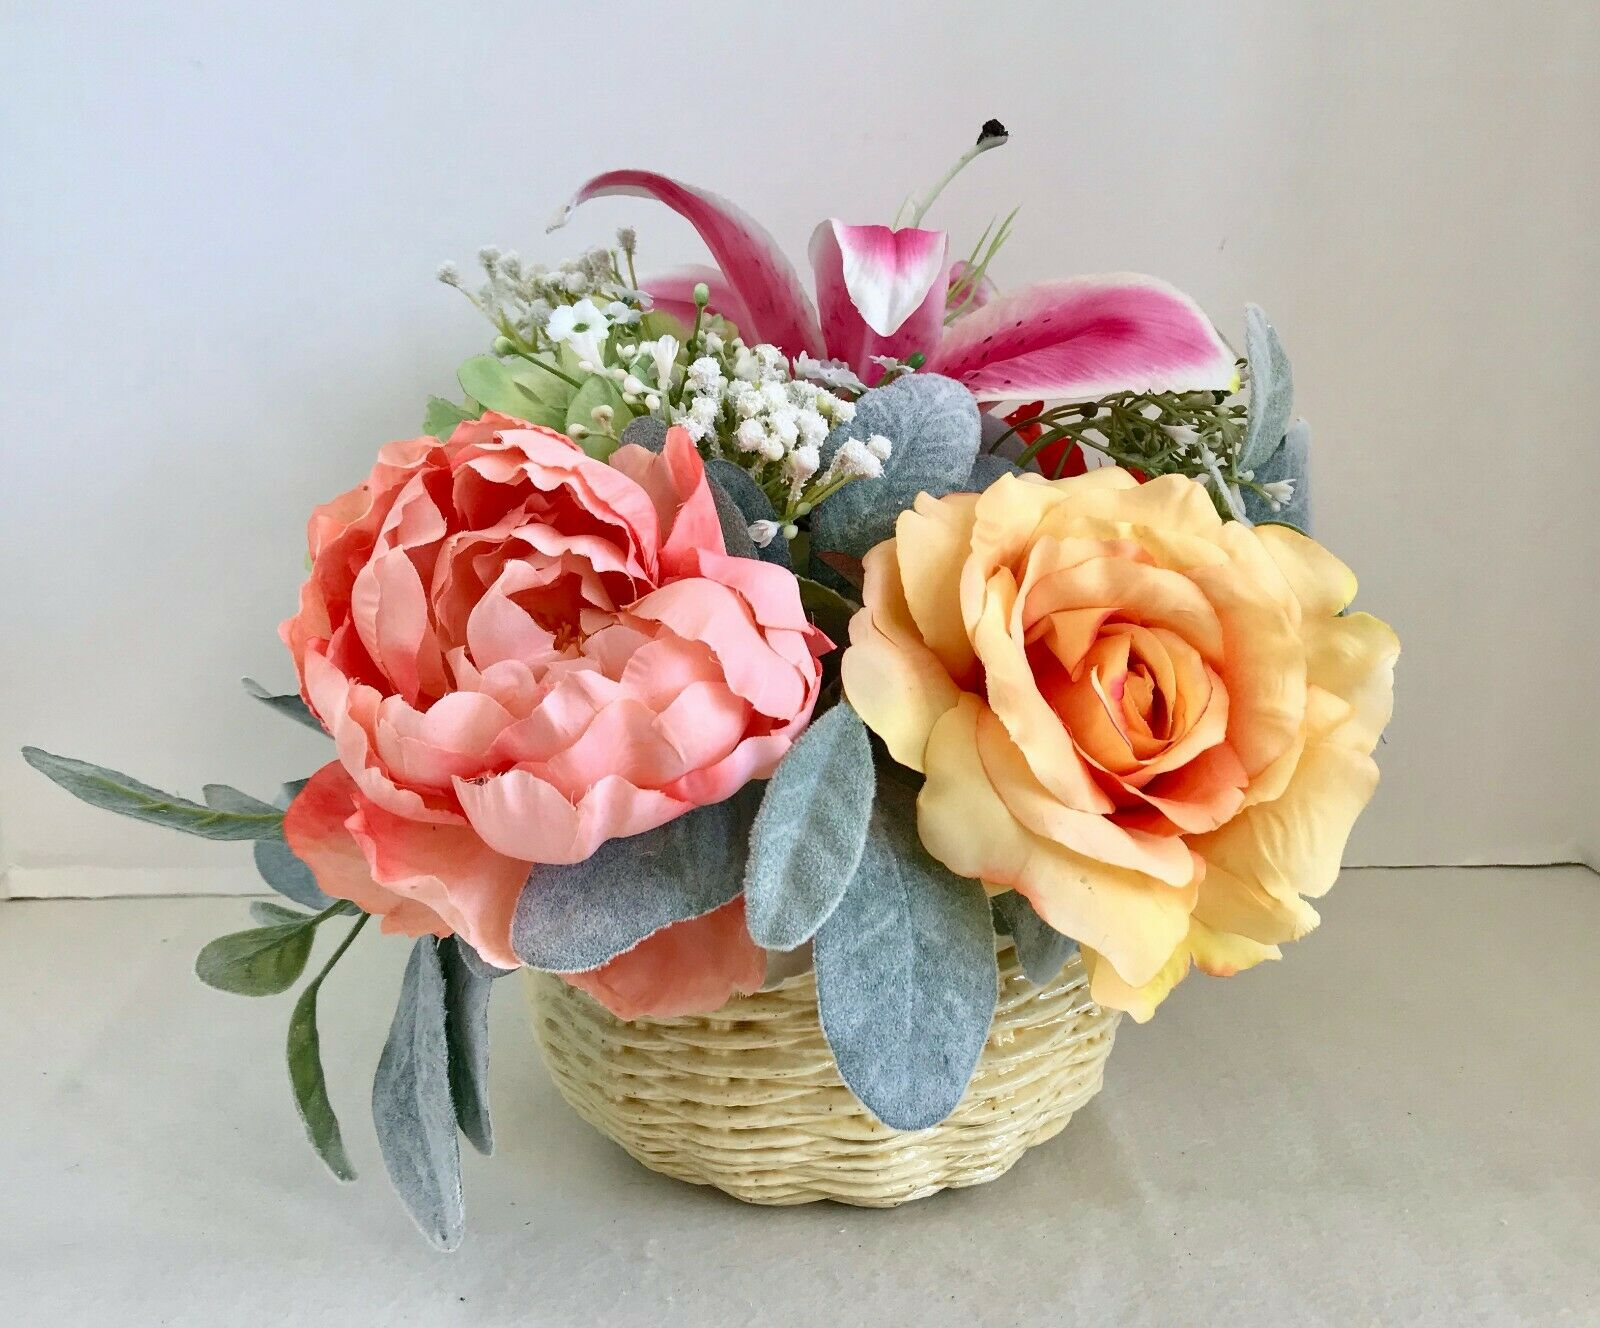 Floral Arrangement with Multi-ColGoldt Silk Flowers in a braun Ceramic Basket